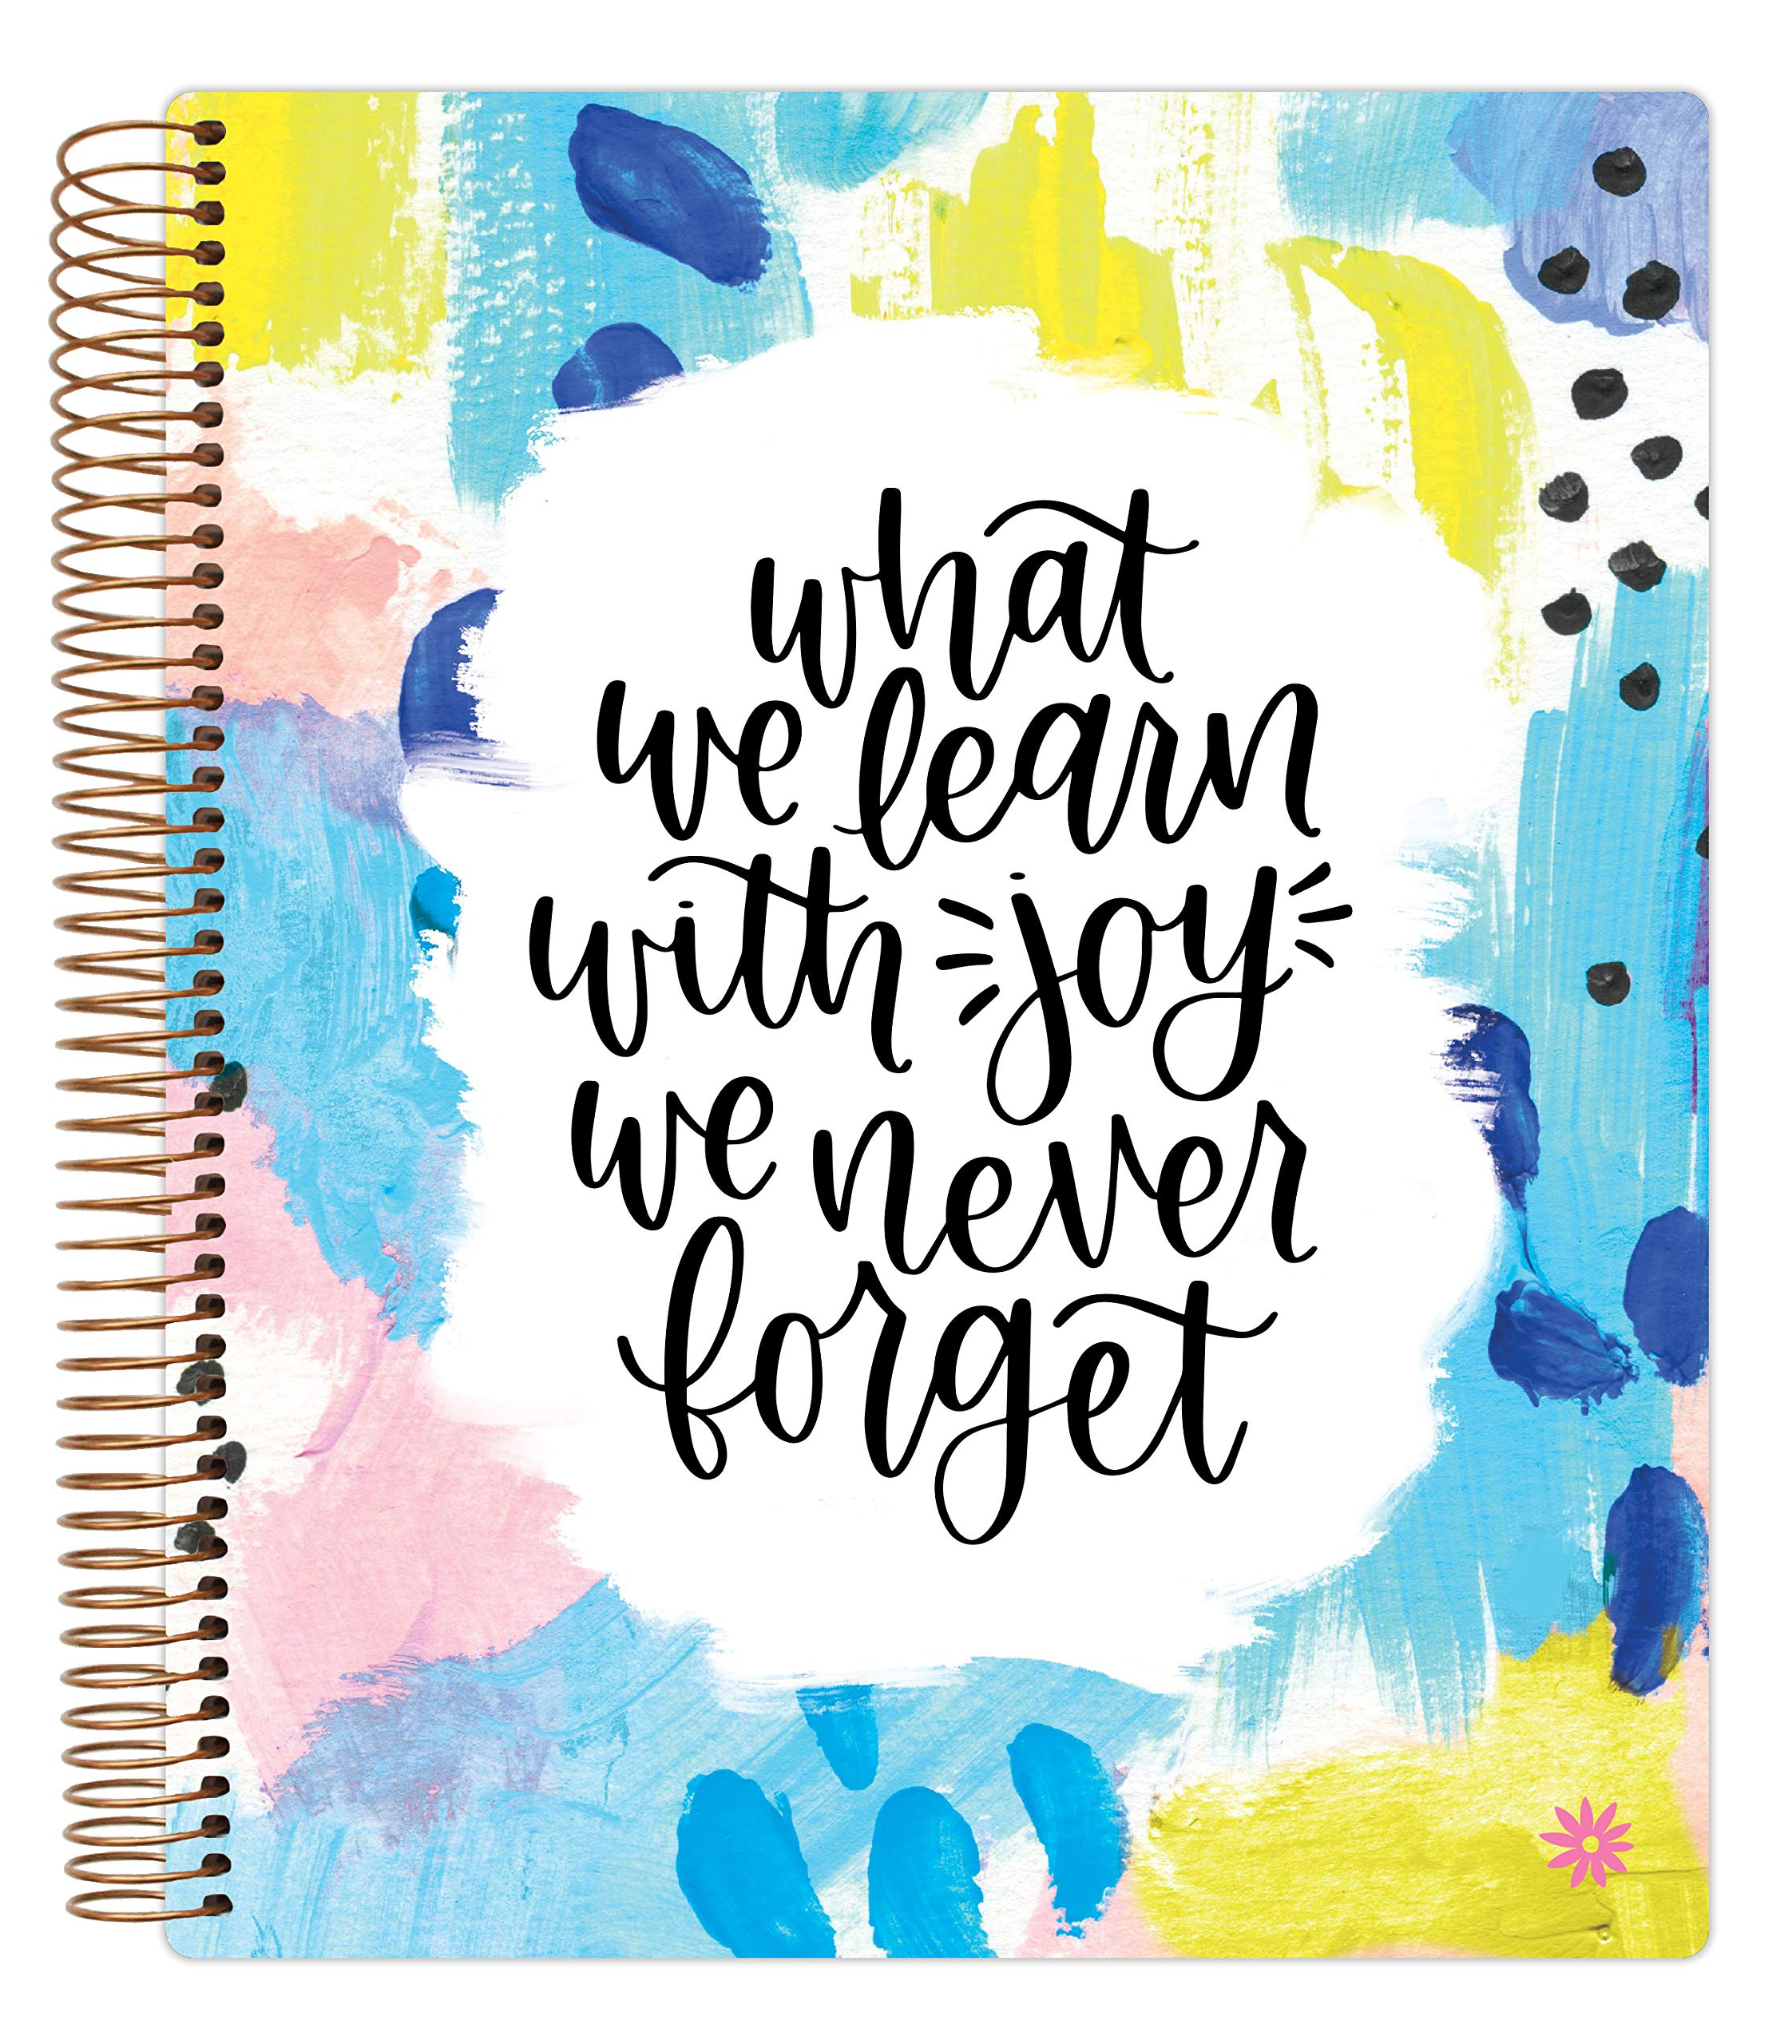 bloom daily planners Undated Academic Year Teacher Planner & Calendar - Lesson Plan Organizer Book (9'' x 11'') - Learn with Joy by bloom daily planners